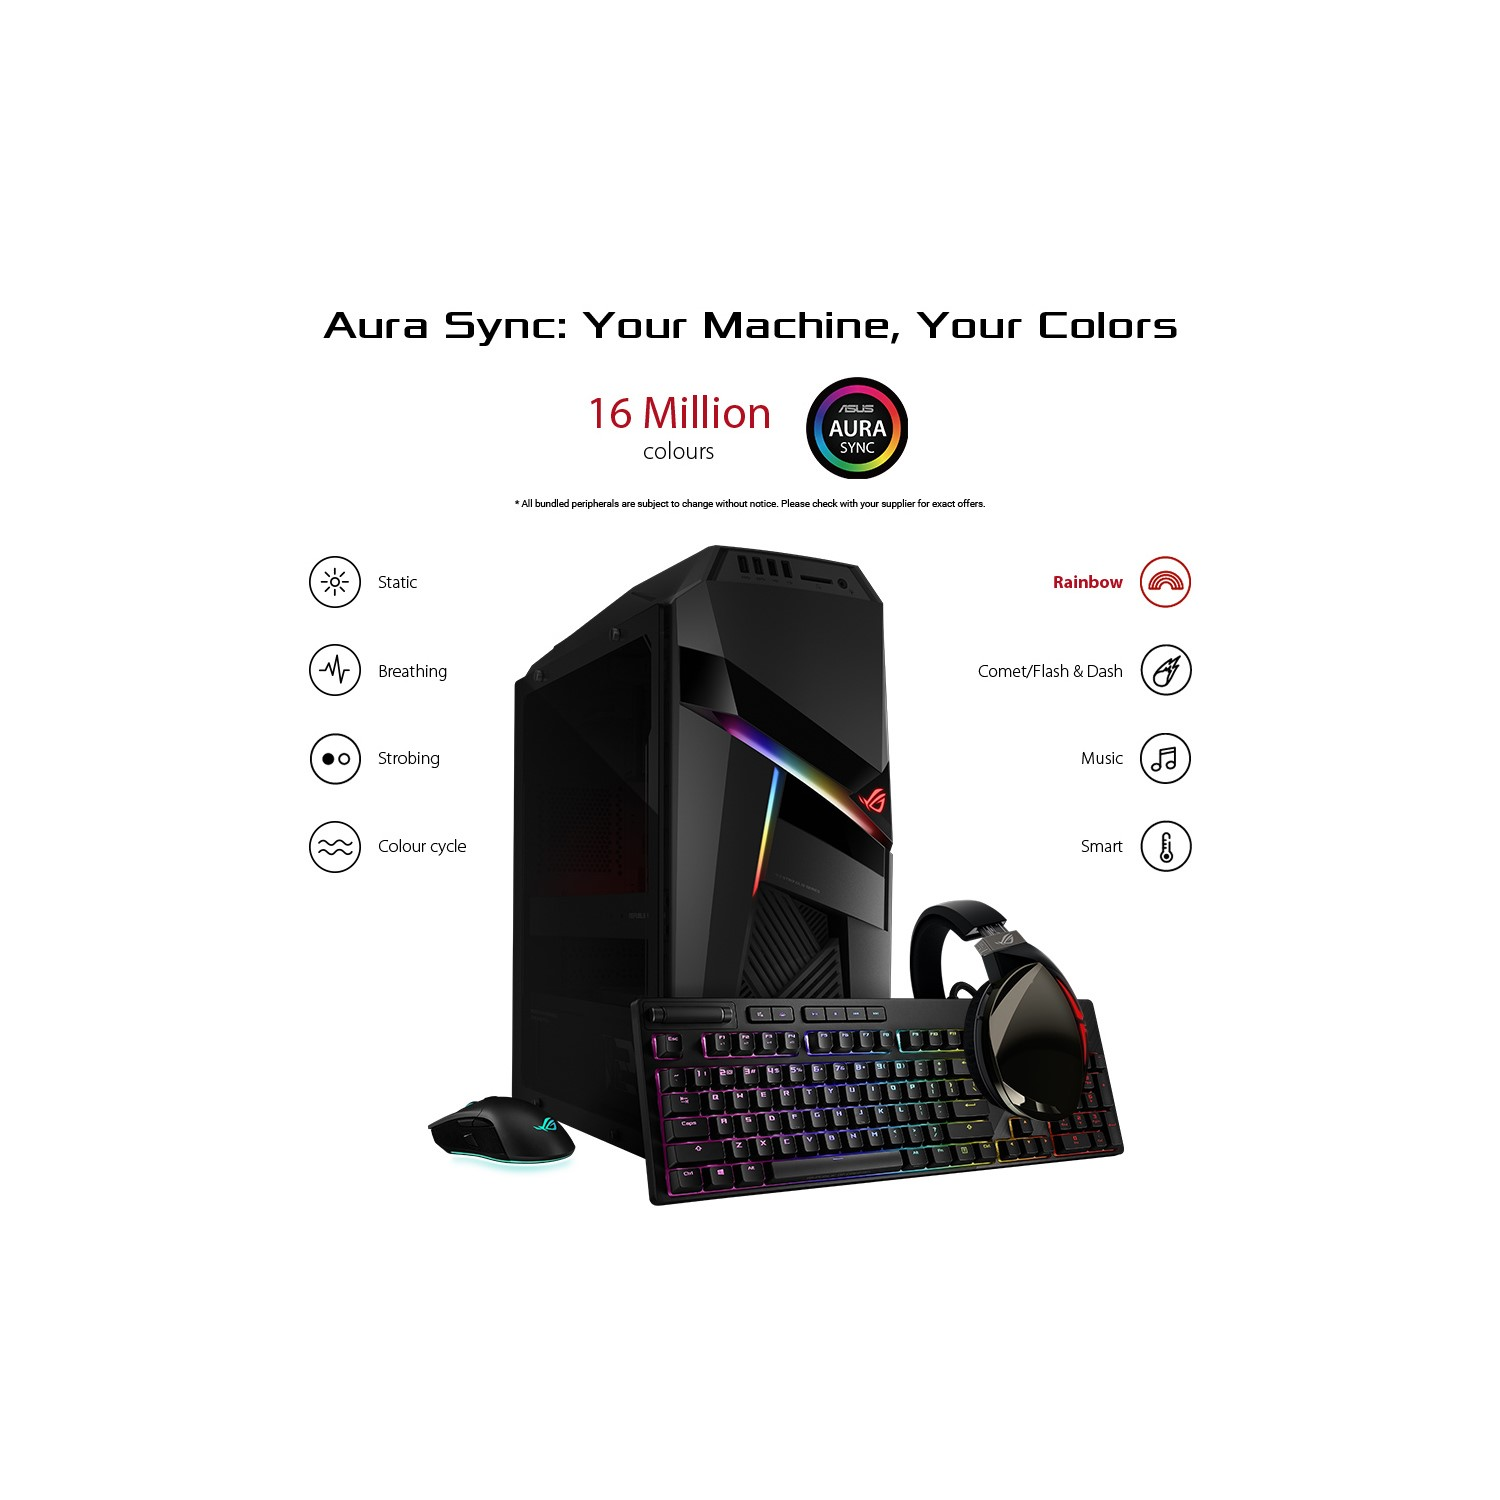 Asus ROG Strix GL12 Core i9-9900K 32GB 1TB + 512GB GeForce RTX 2080 8GB  Windows 10 Pro Gaming PC